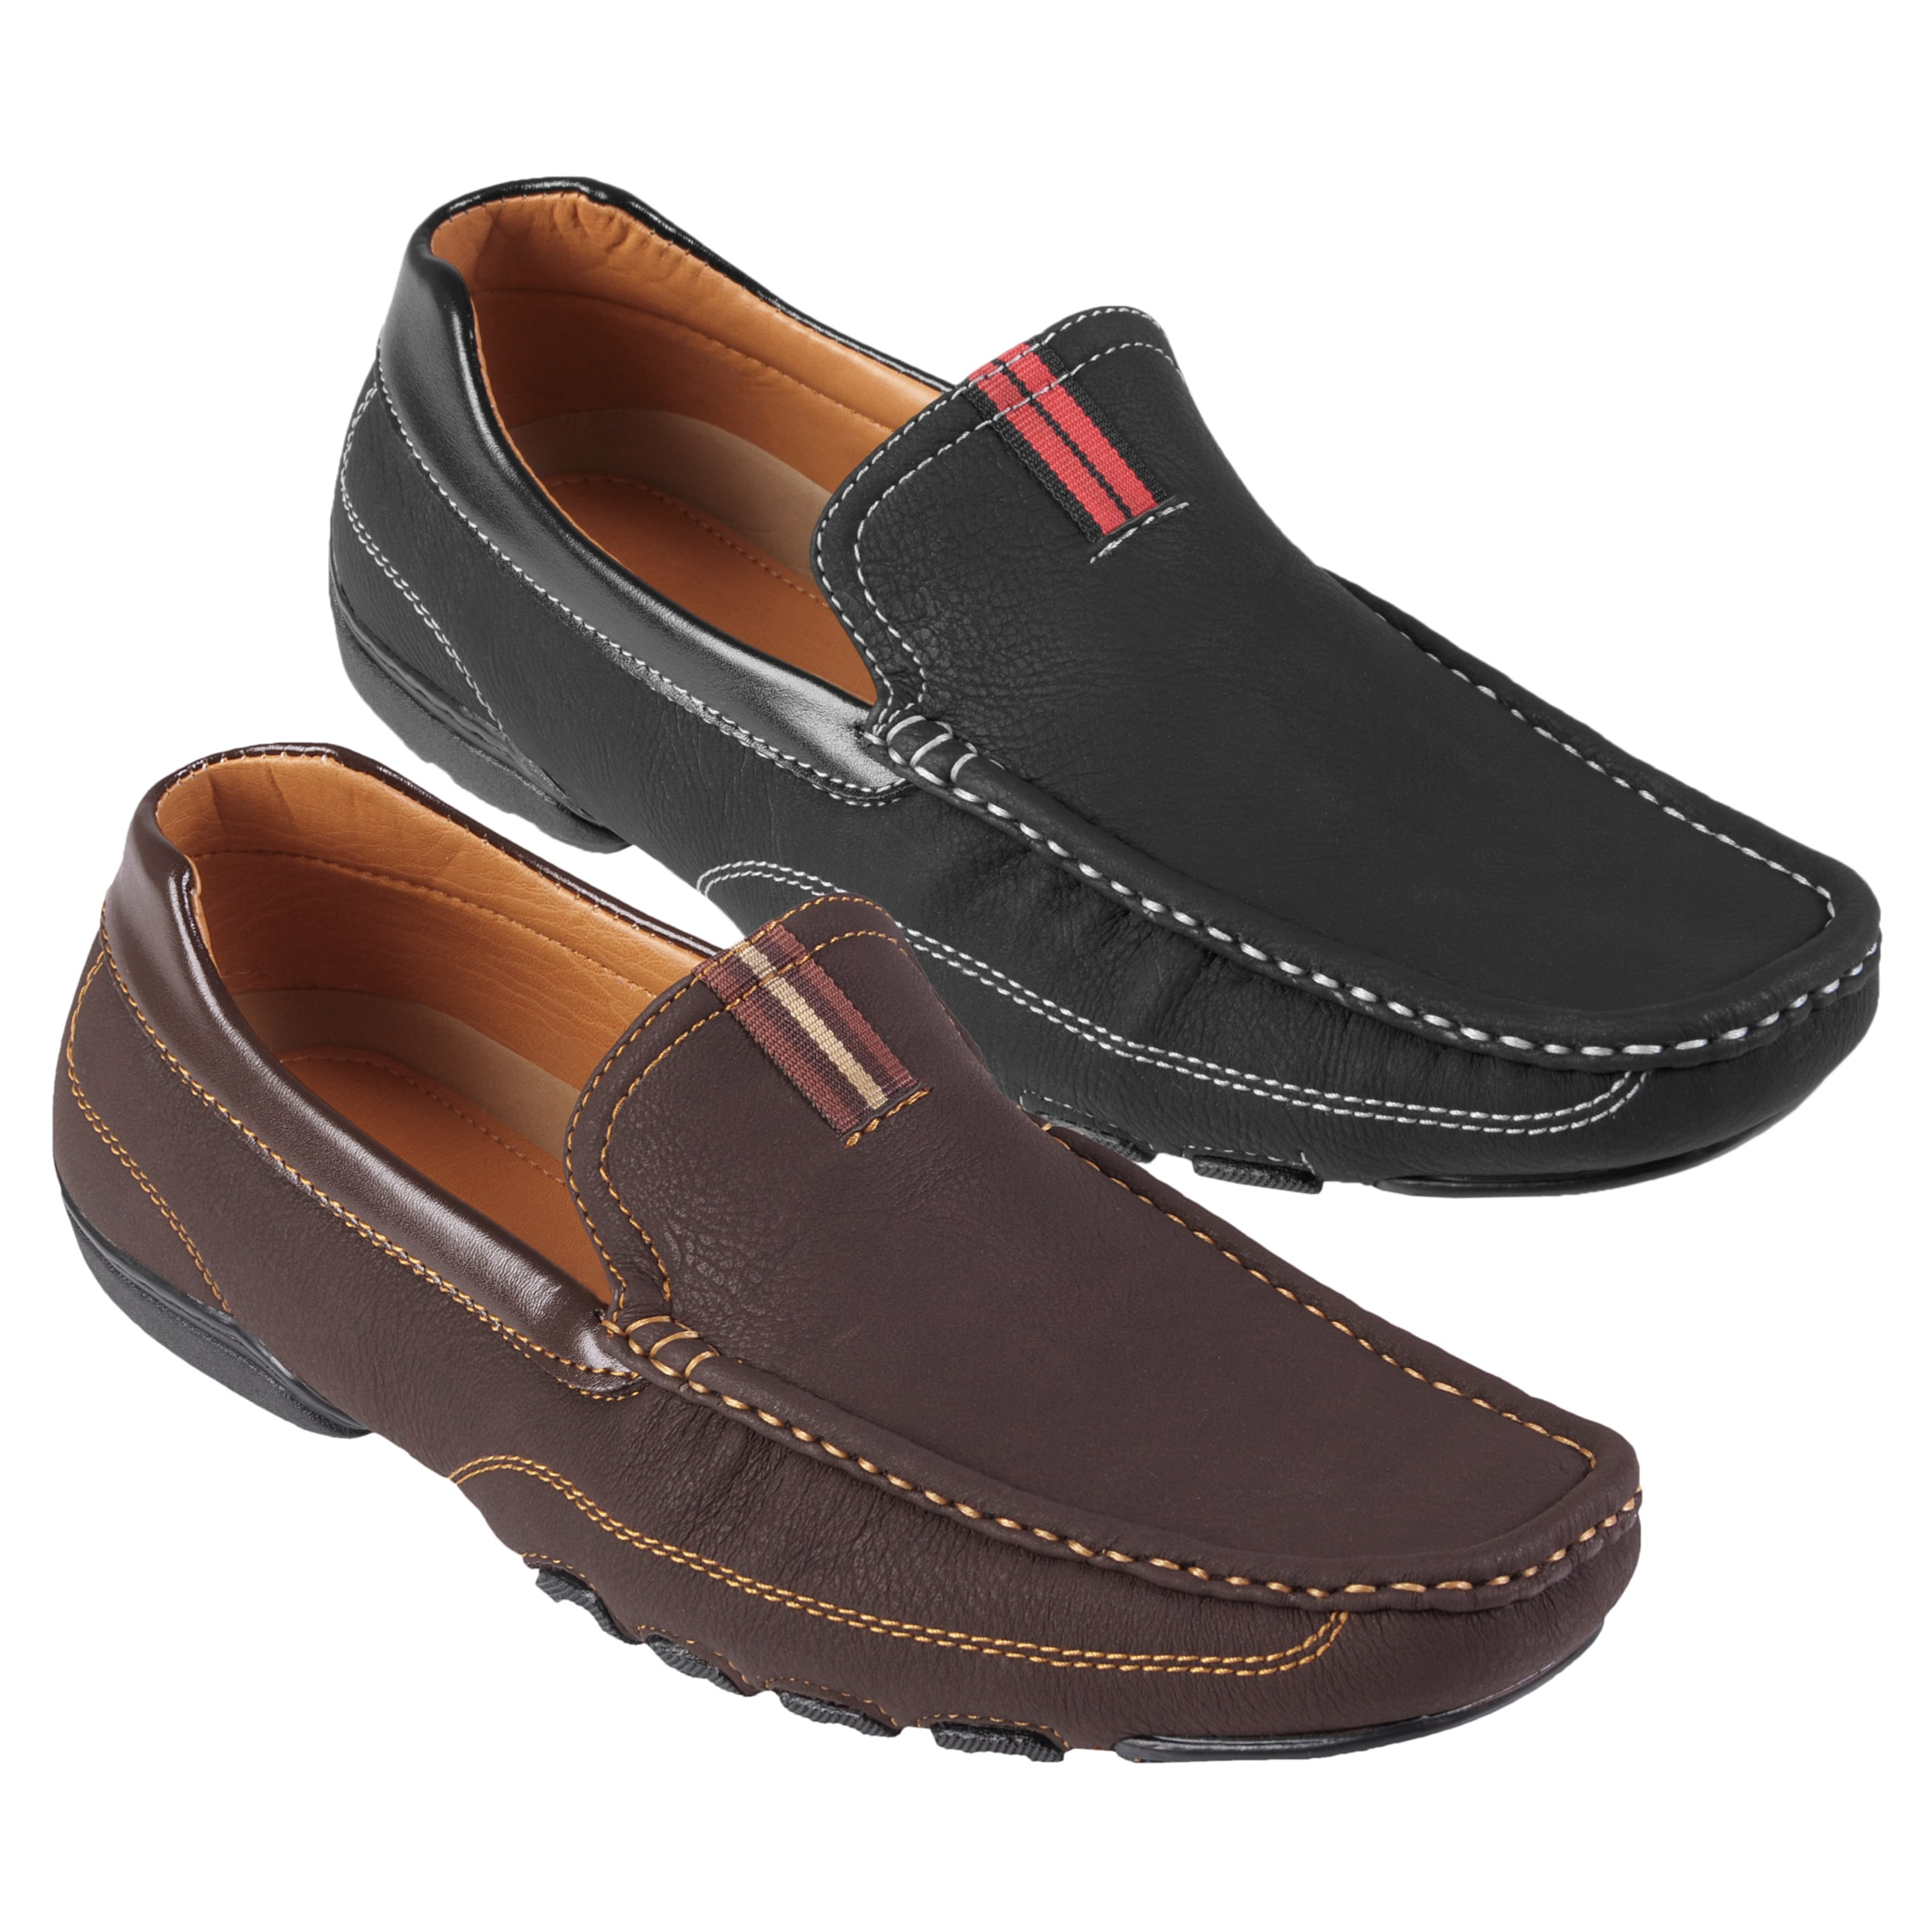 Boston Traveler Men's Topstitched Square Toe Slip-on Loafers